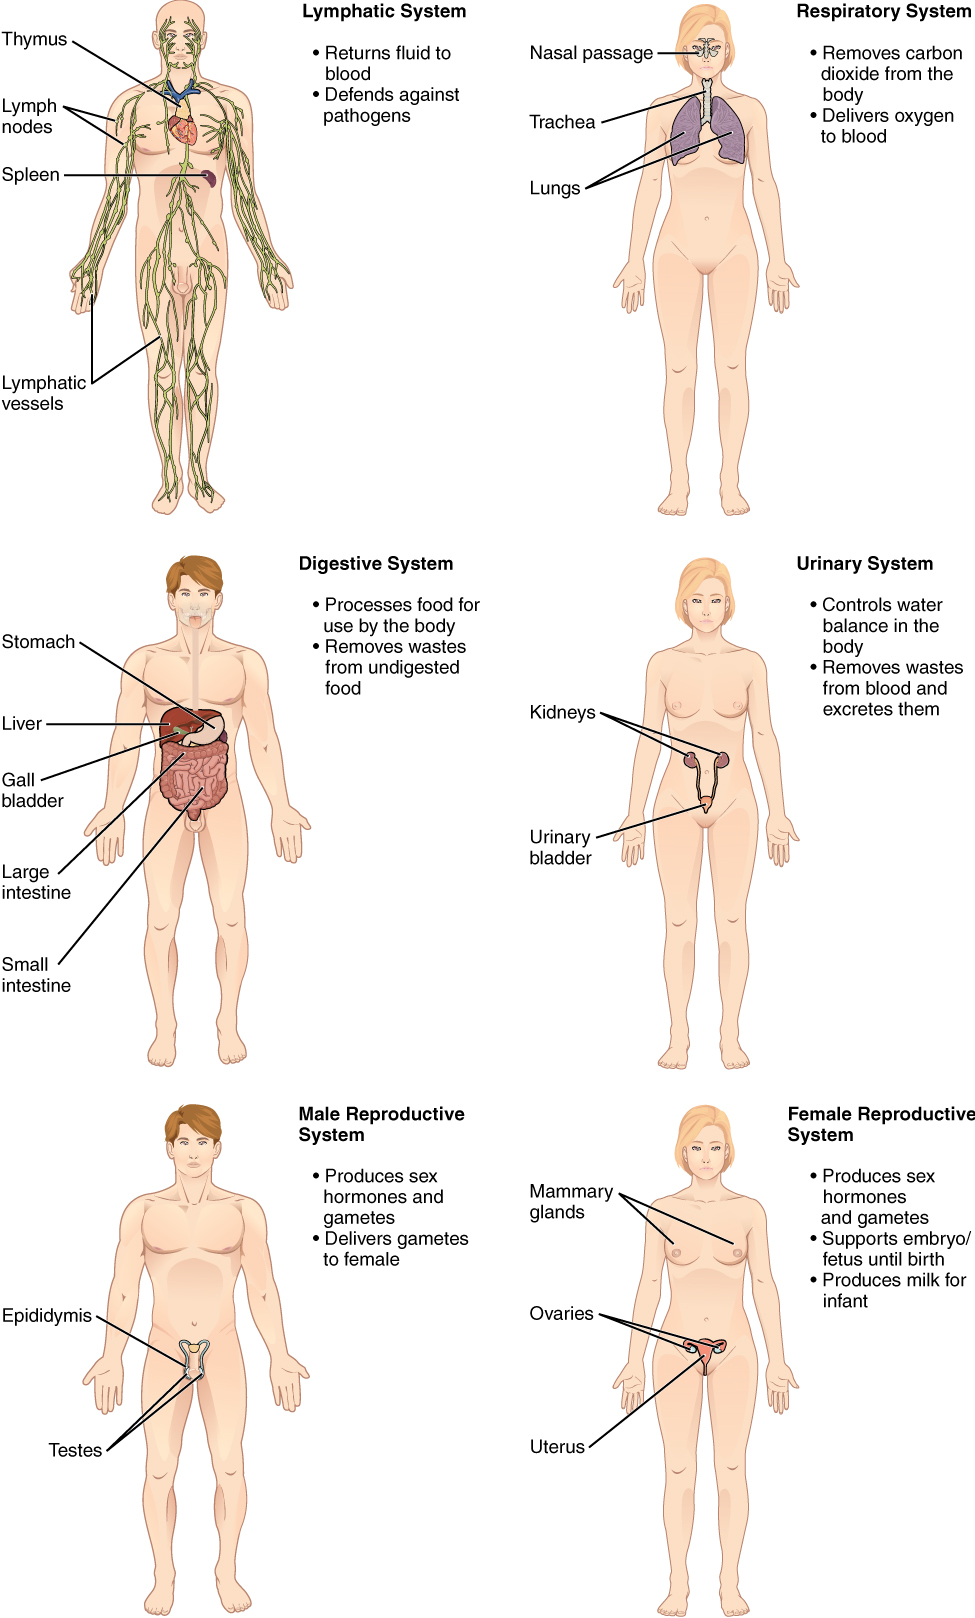 1 2 Structural Organization Of The Human Body Anatomy And Physiology